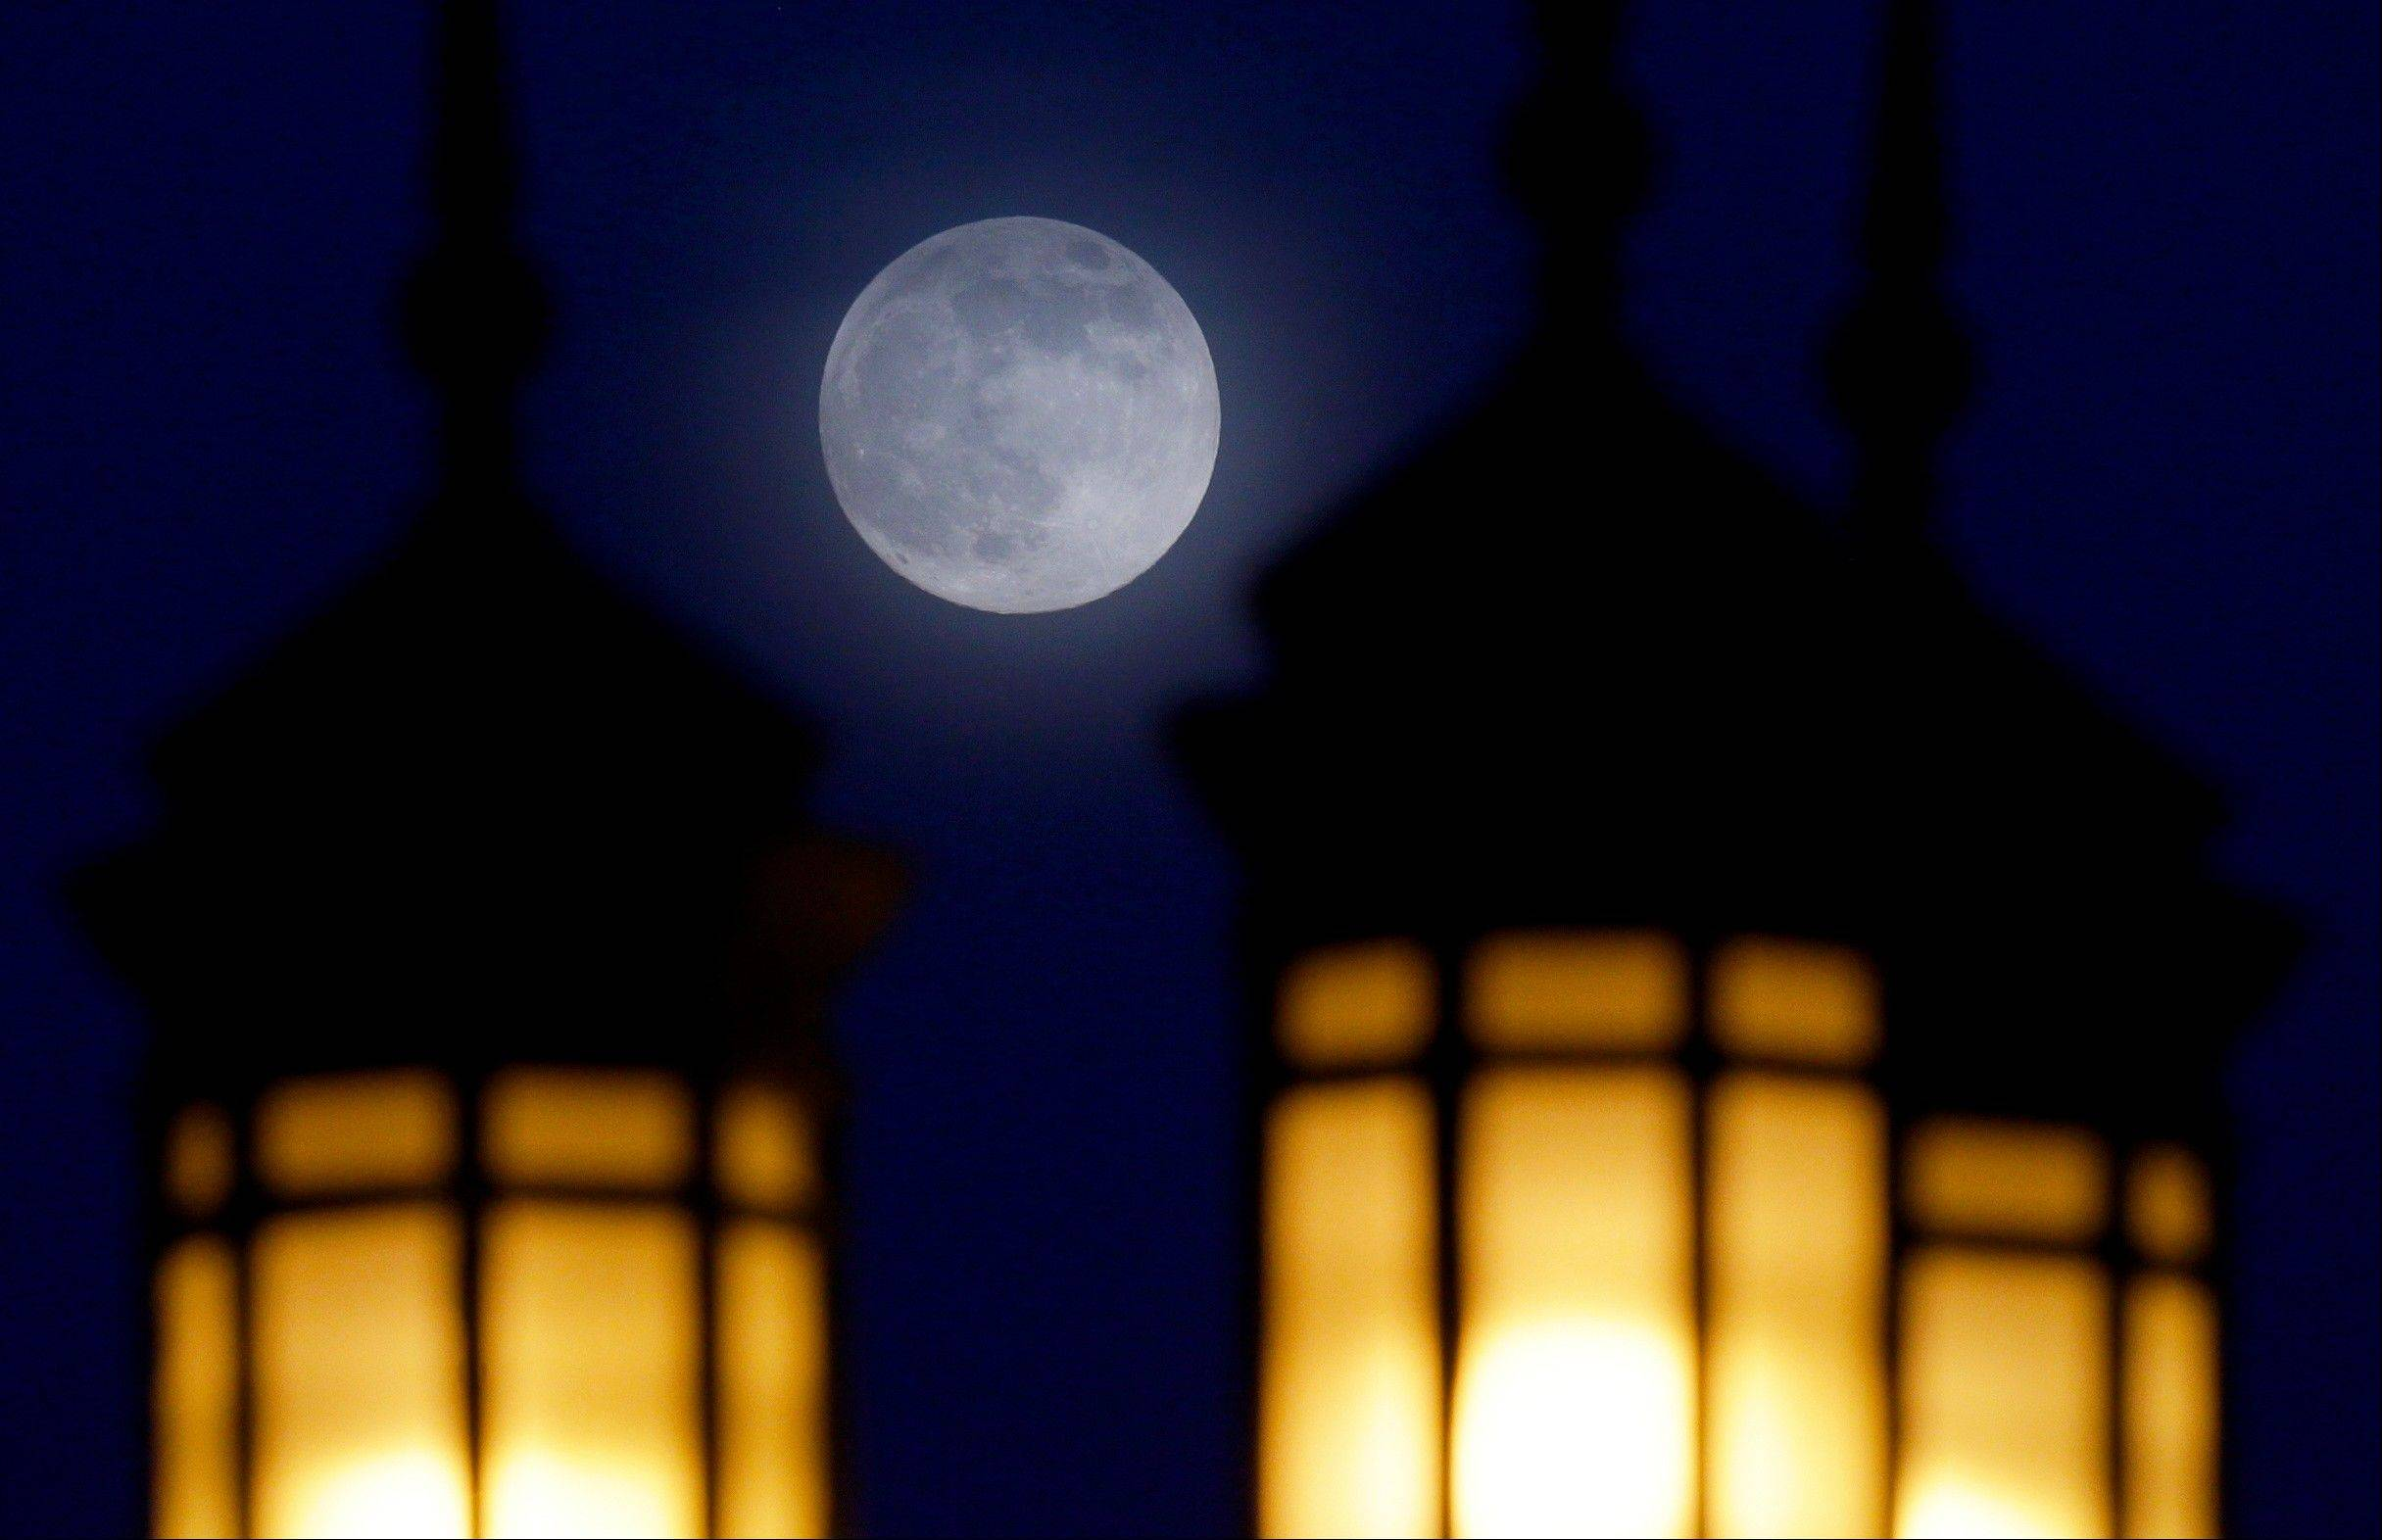 A full moon rises through a hazy sky over street lamps, Saturday, June 22, 2013, in Baltimore. The moon, which will reach its full stage on Sunday, is expected to be 13.5 percent closer to earth during a phenomenon known as supermoon.